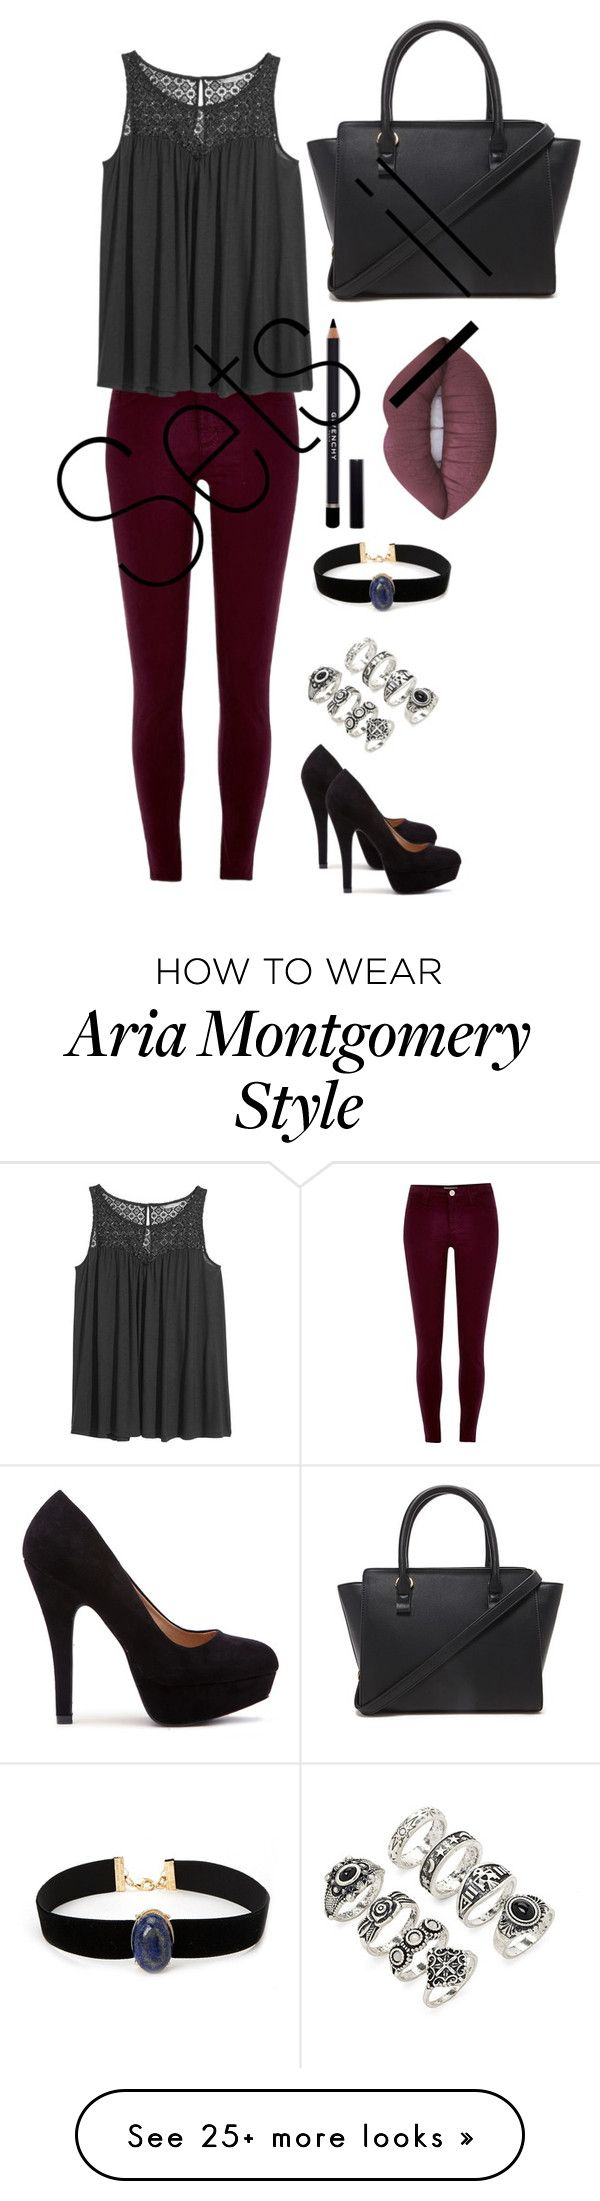 """""""Aria Montgomery inspired outfit"""" by ellamendallas on Polyvore featuring River Island, H&M, Forever 21, Givenchy and Lime Crime"""